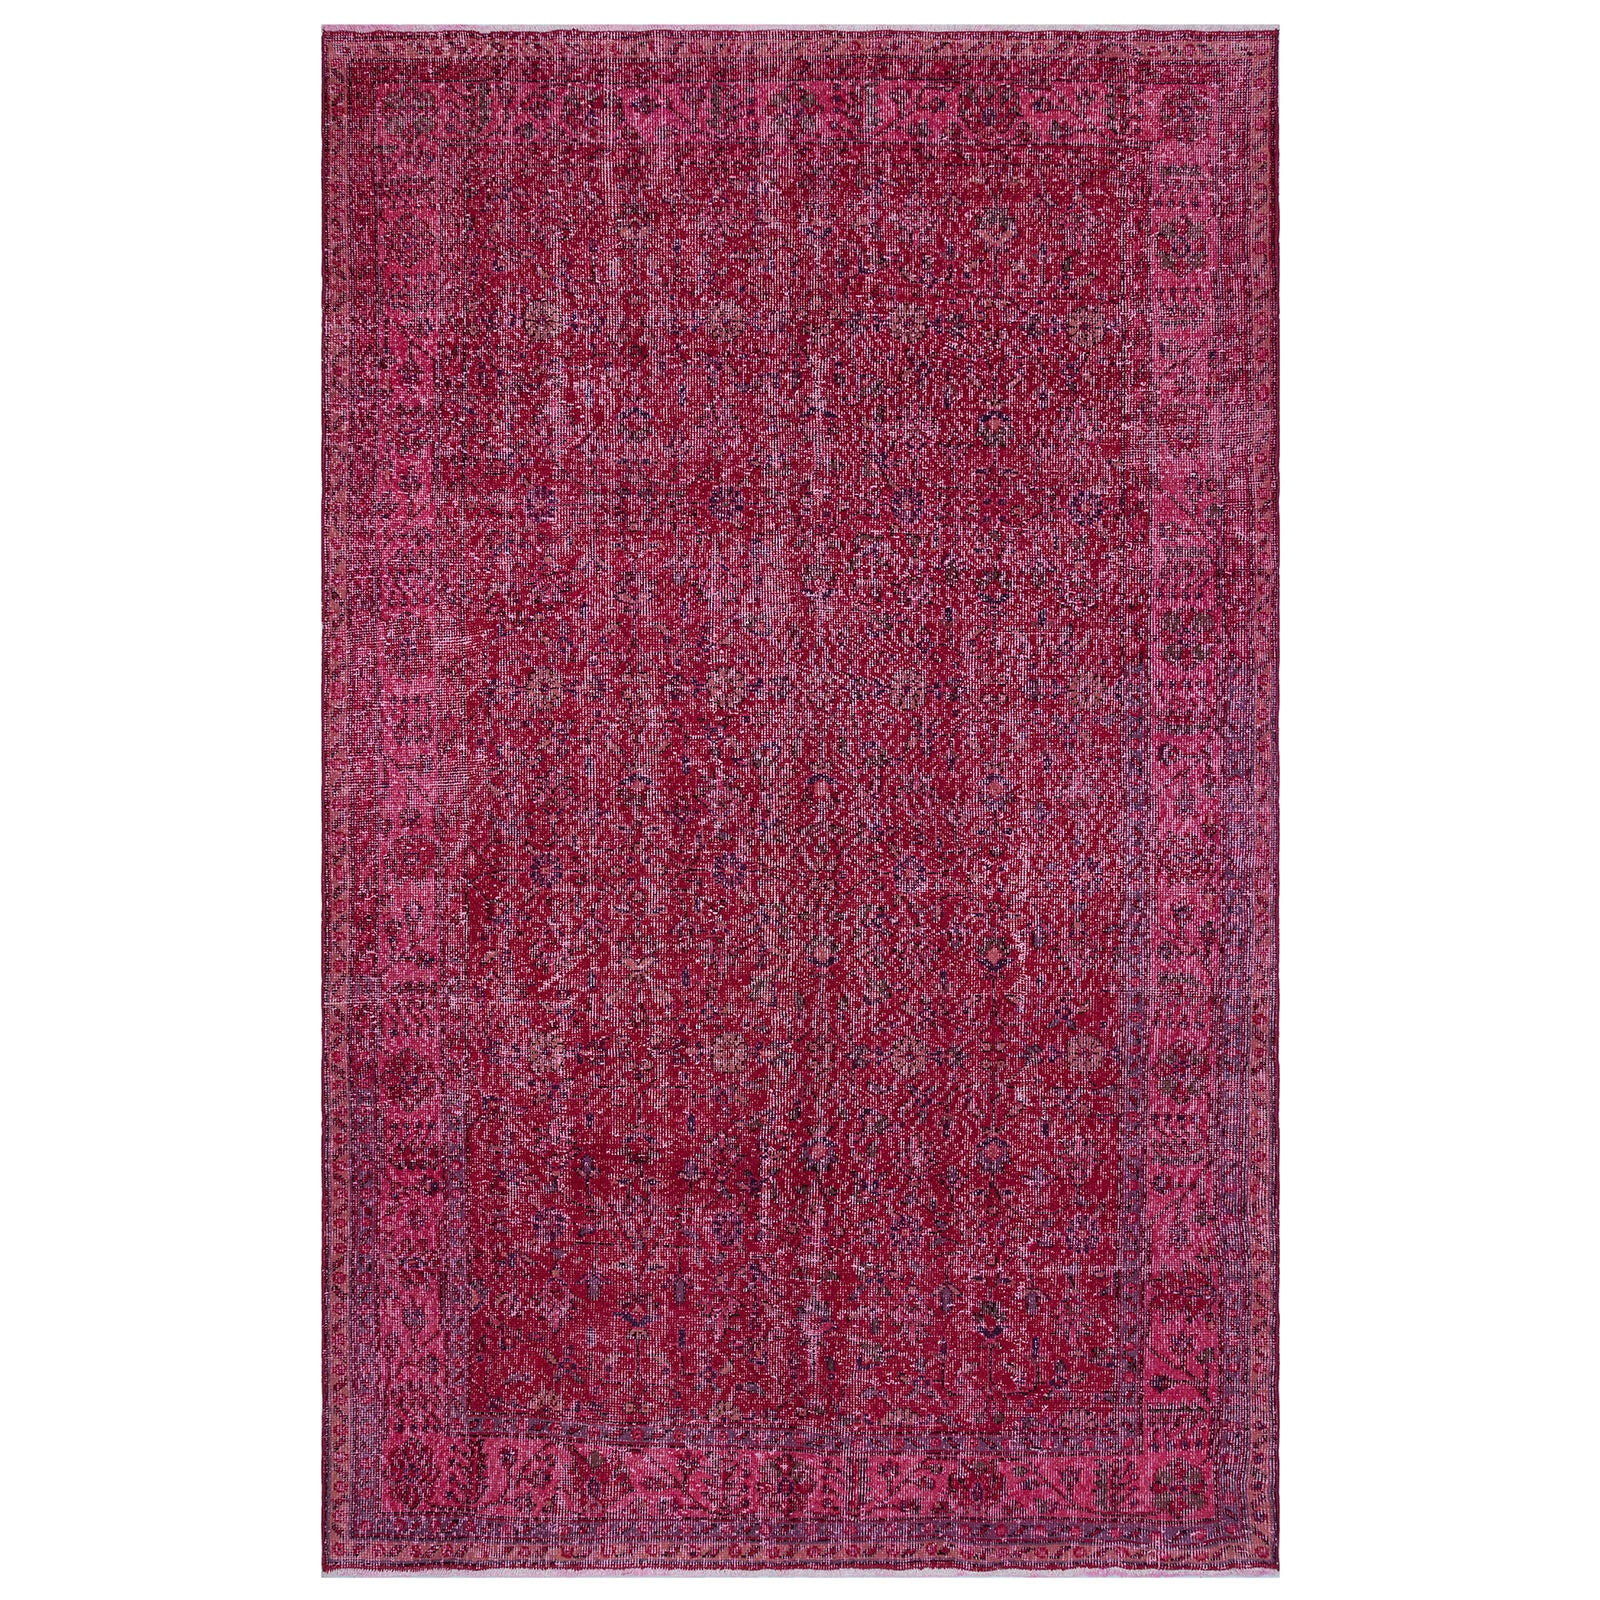 Hali 190X309  CM Bursa Handmade over dyed rug  1581